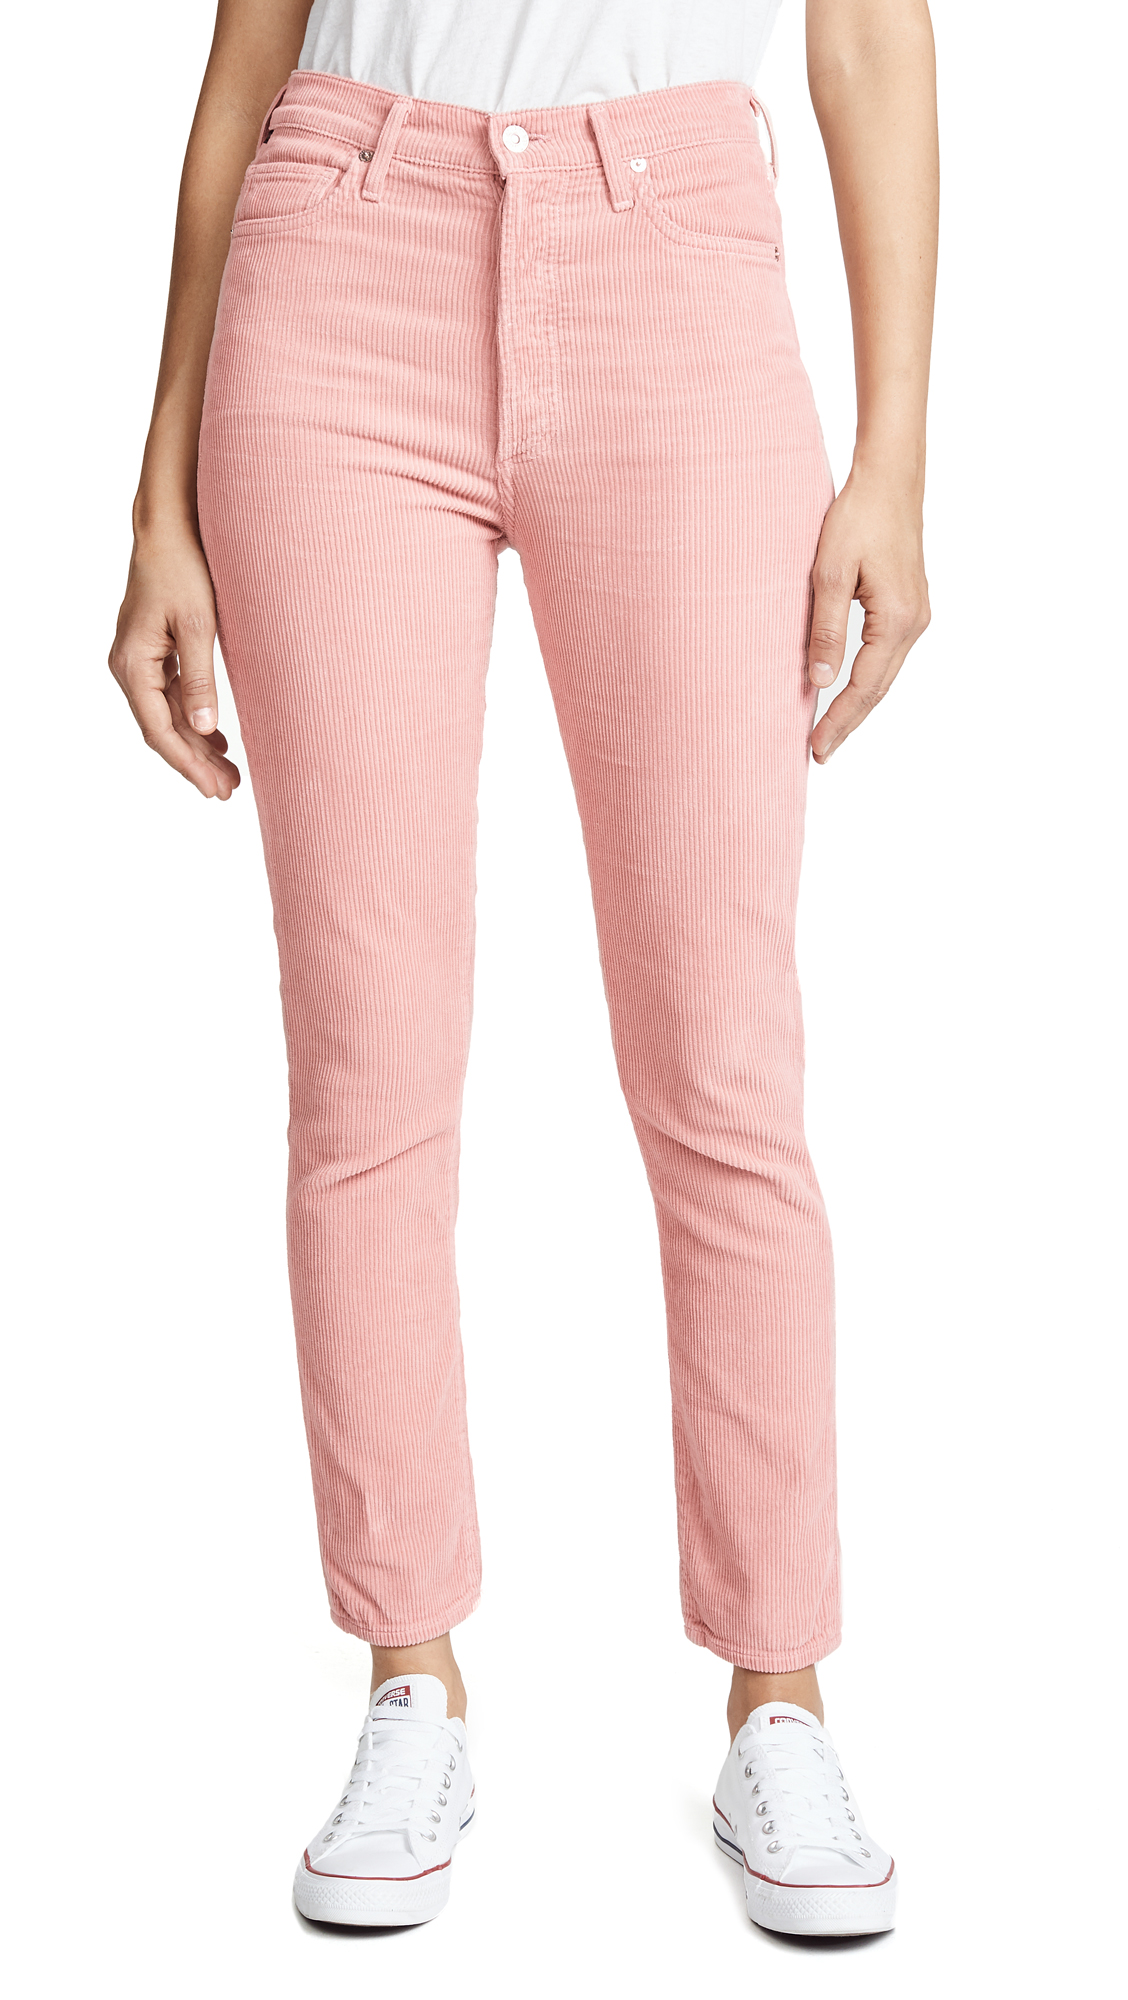 Citizens of Humanity Olivia High Rise Slim Ankle Jeans - Pink Dust